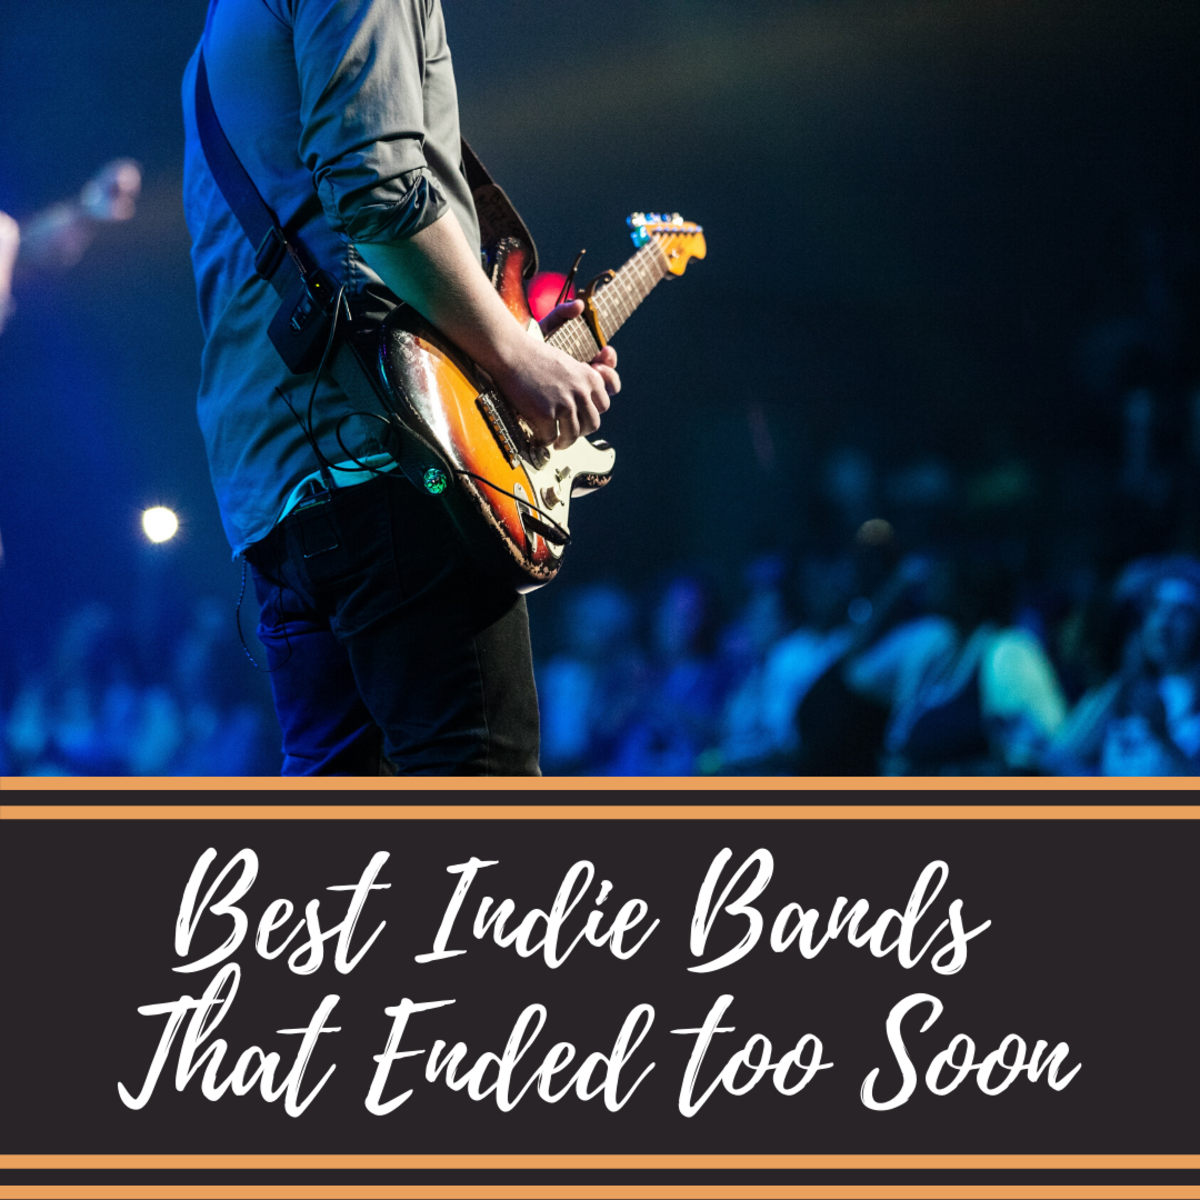 It's too bad these bands broke up. Read on to see if your favorite made the list.